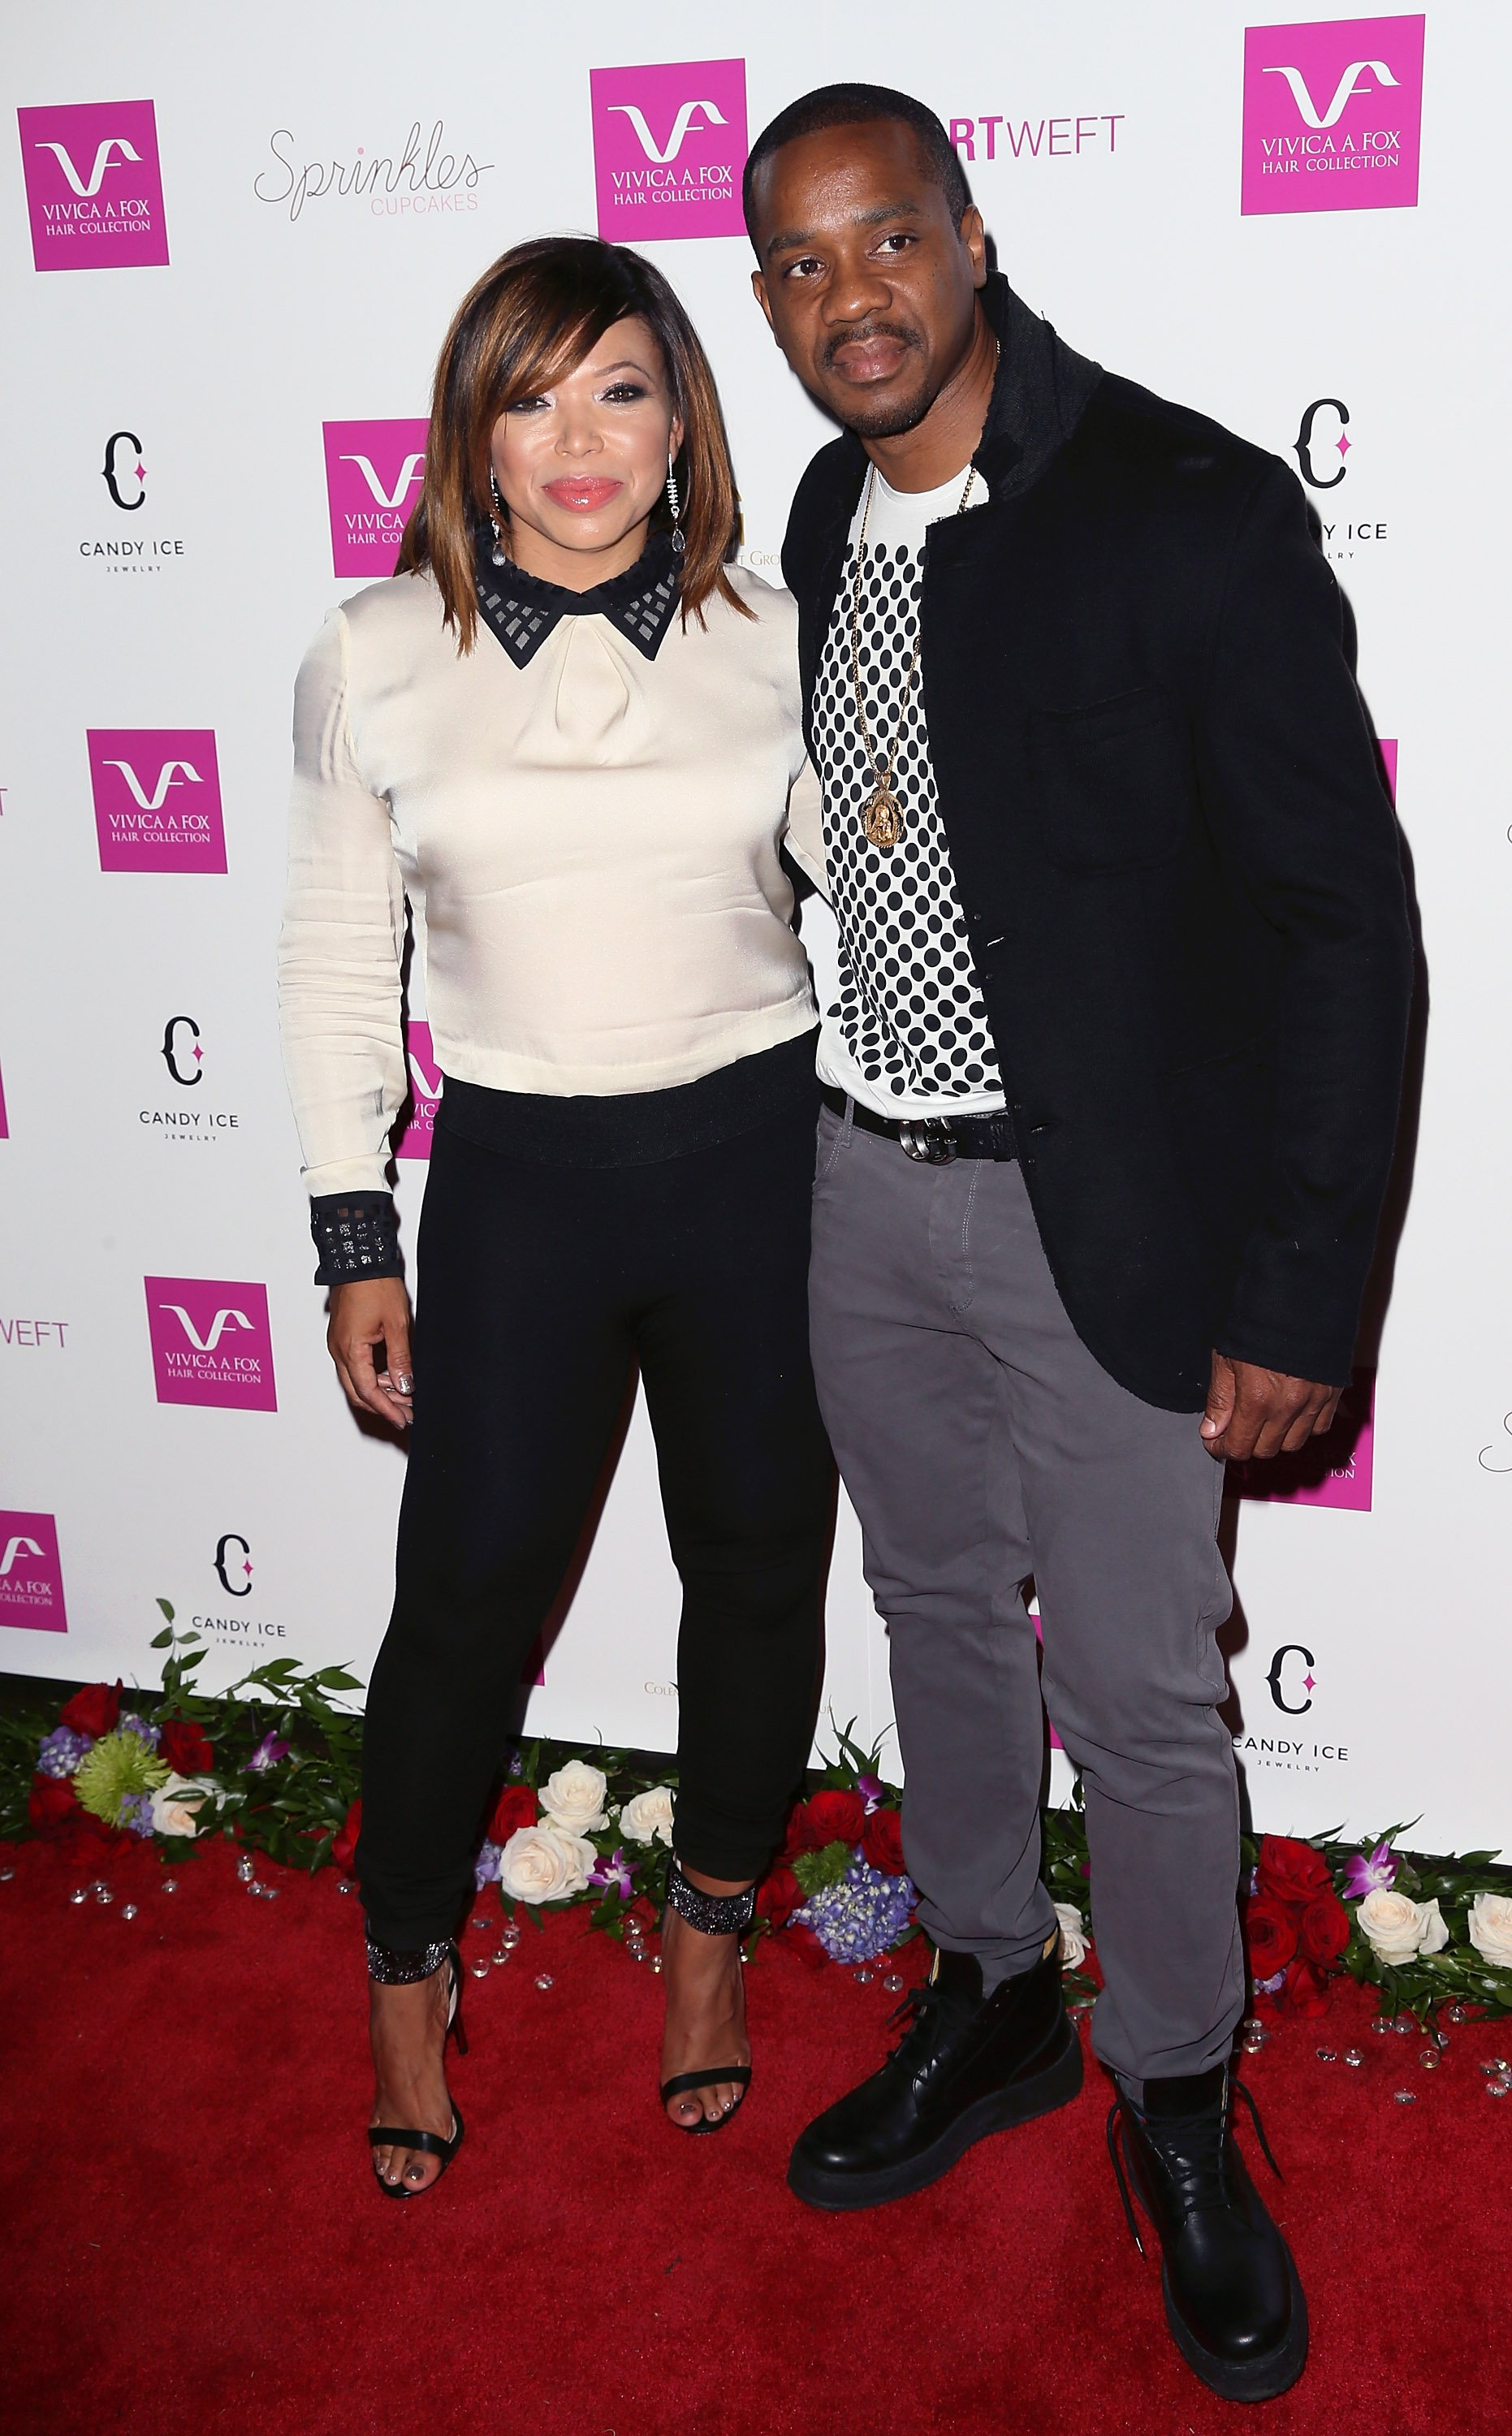 Tisha Campbell & Duane Martin at Vivica A. Fox's 50th birthday celebration on Aug. 2, 2014 in California | Photo: Getty Images